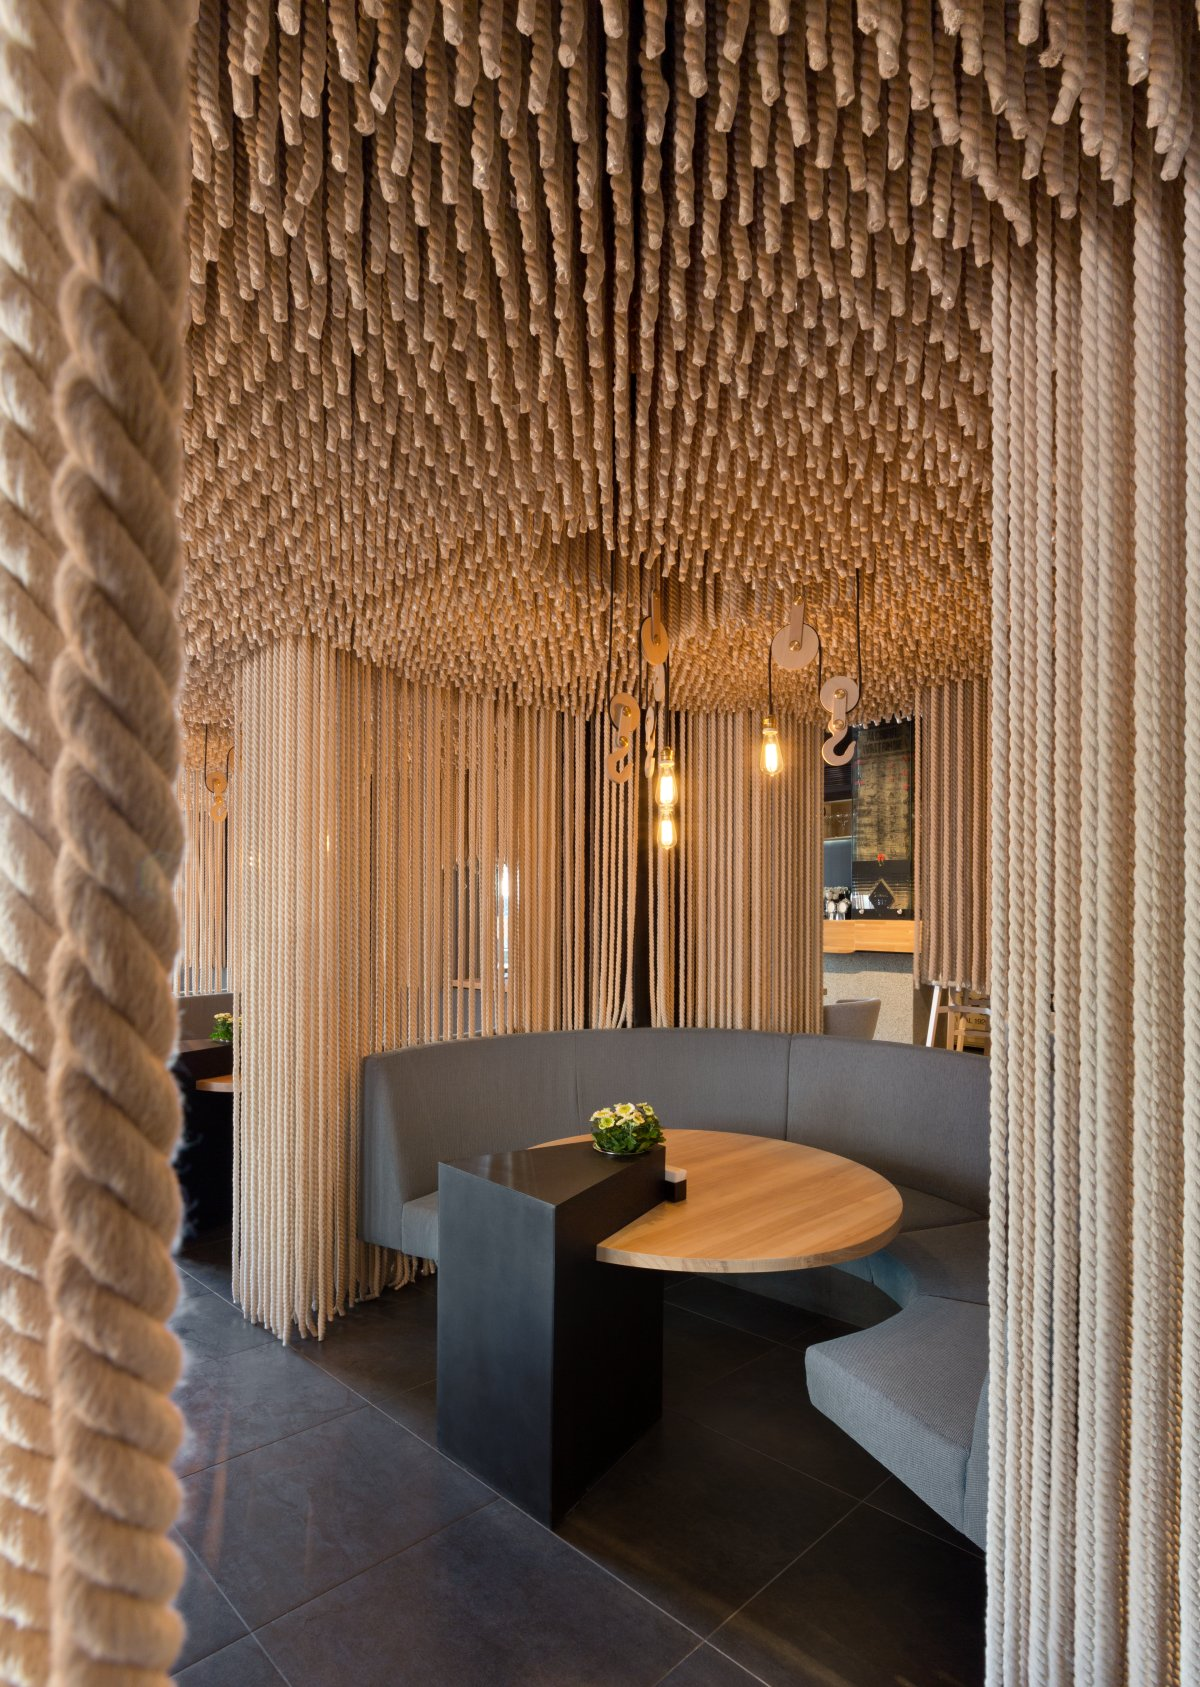 A modern restaurant with rope room dividers and ceiling installation.